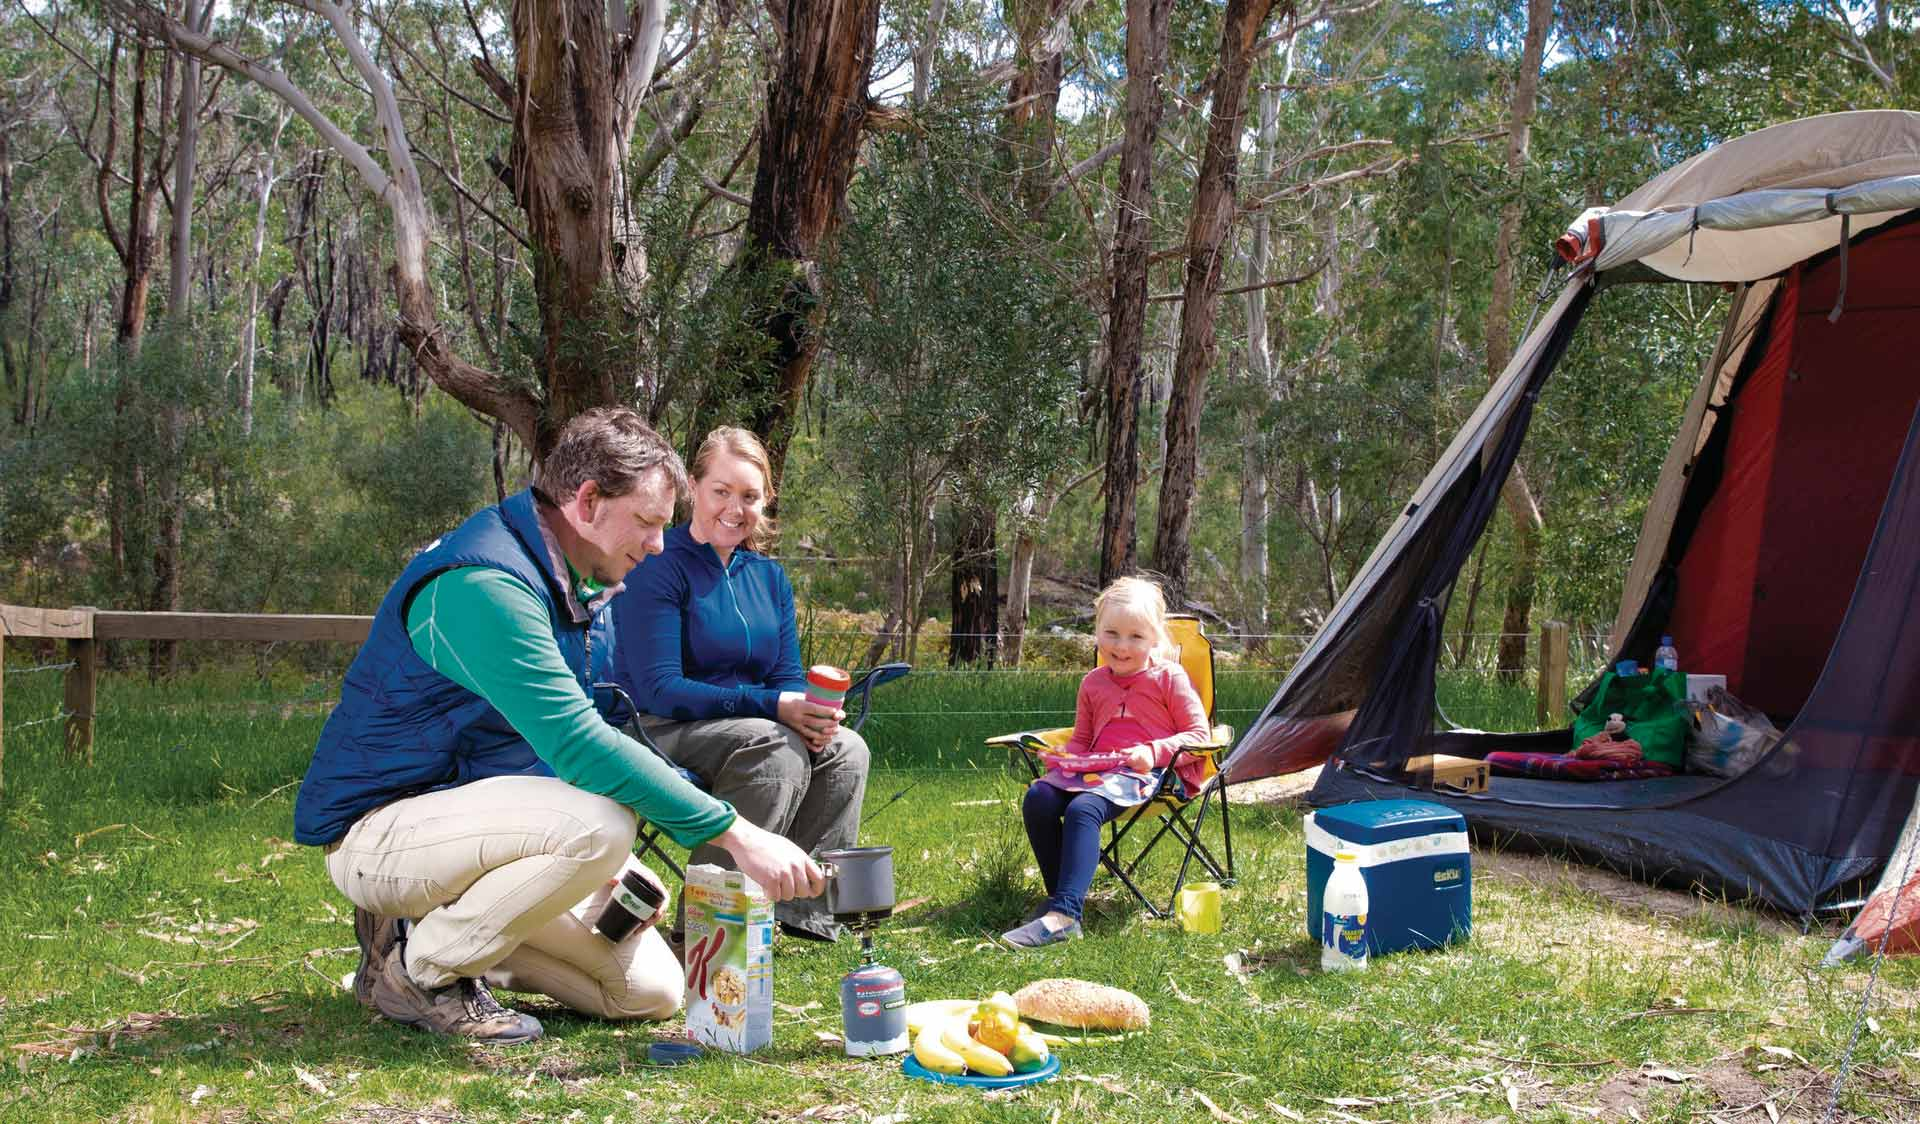 A family camps at Borough Huts in the Grampians National Park